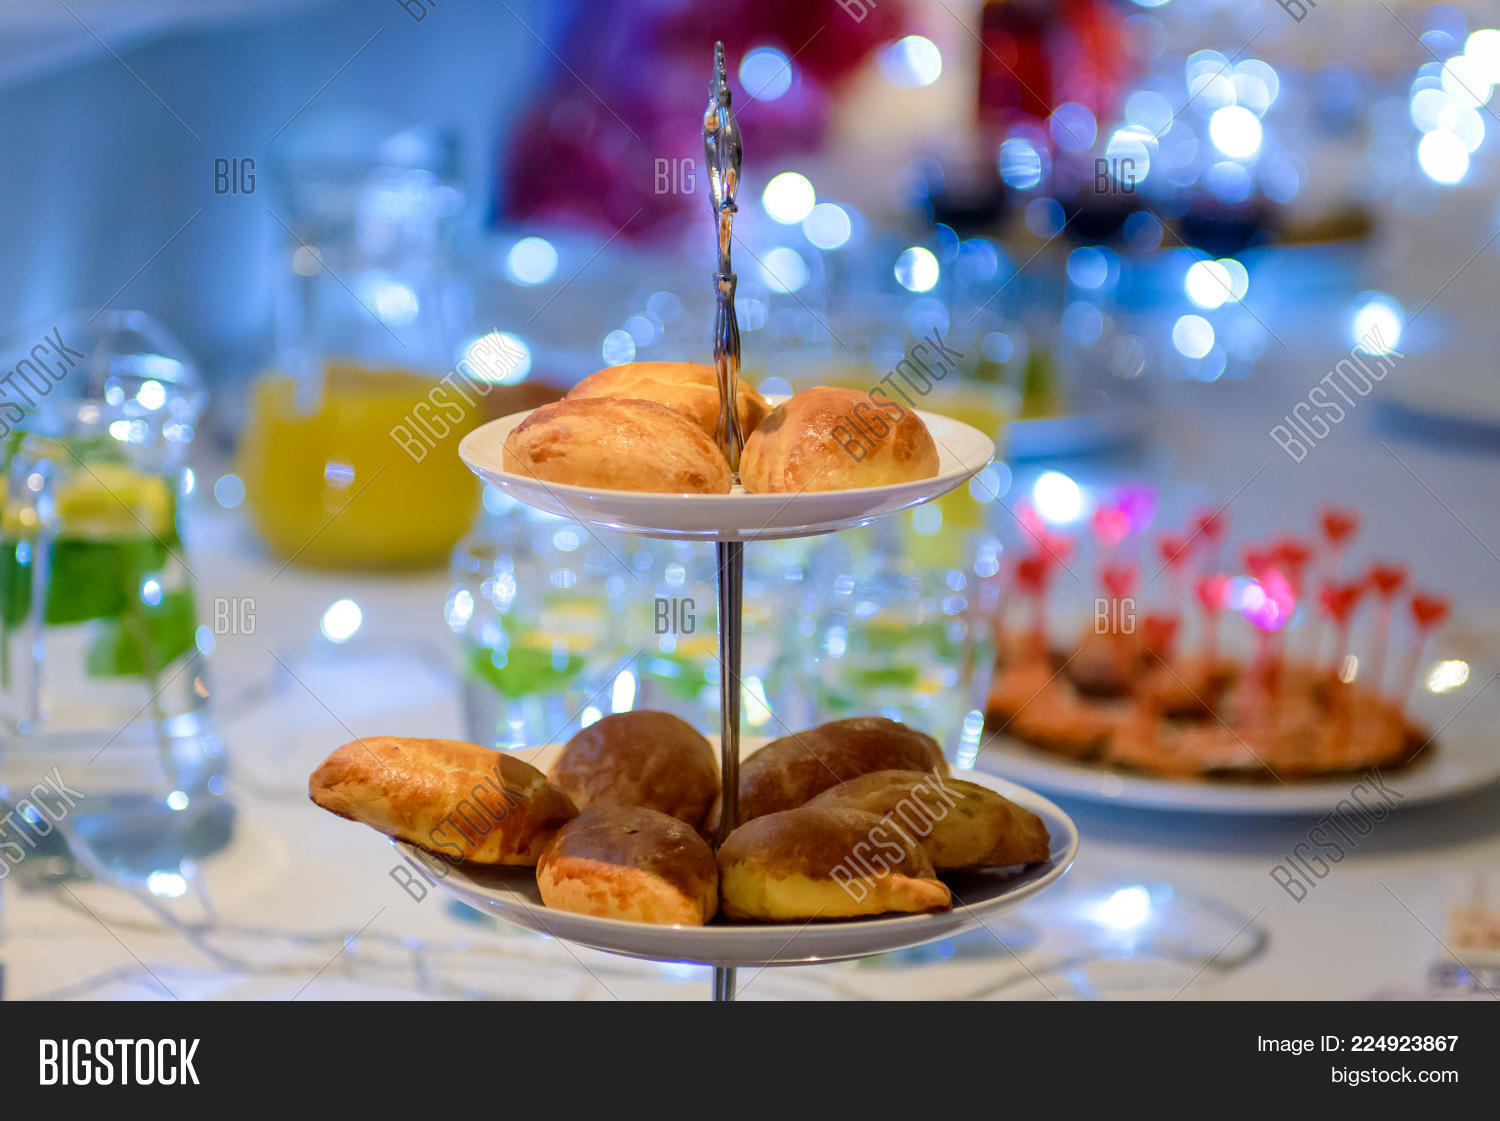 Mince Pies On Holiday Image Photo Free Trial Bigstock